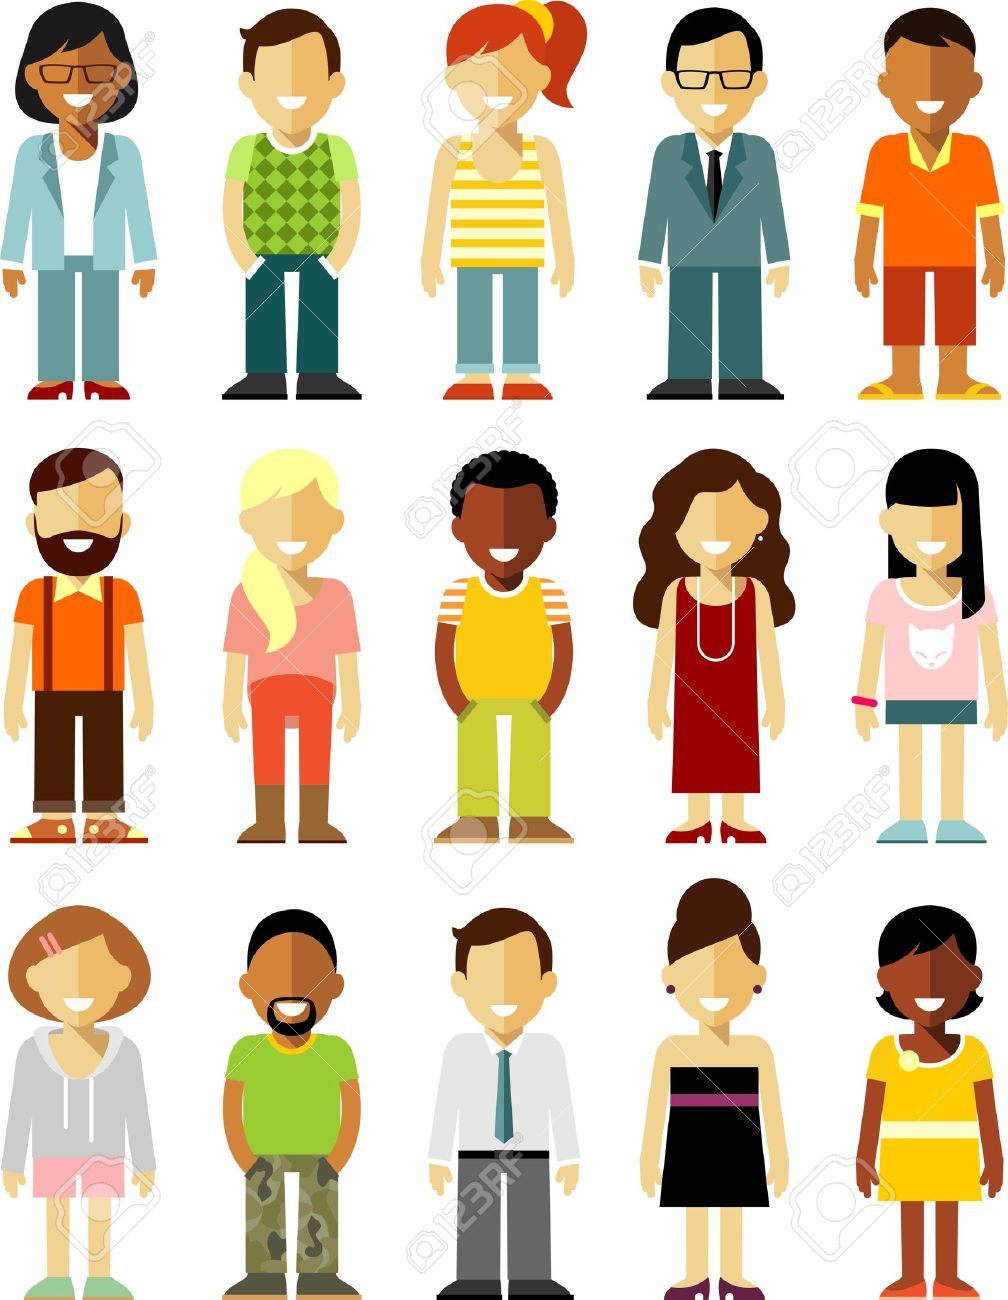 Different People Cliparts Free Download Clip Art.